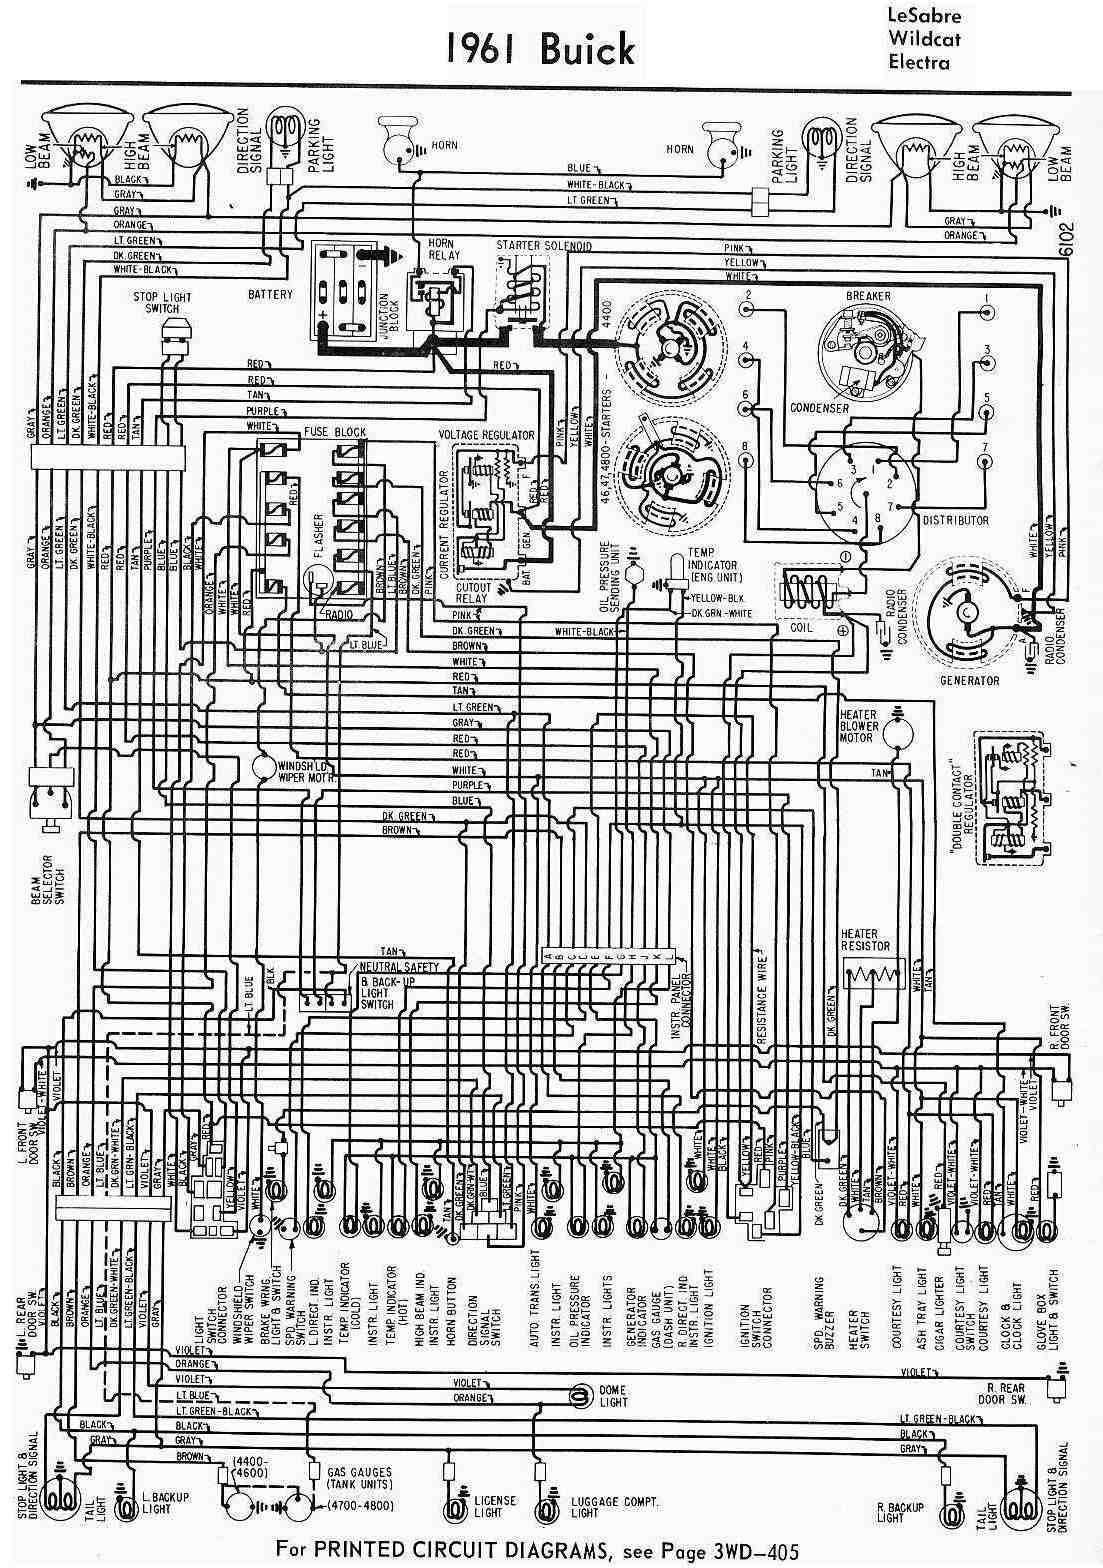 Buick Lesabre C Wildcat C And Electra Wiring Diagram on 1996 Buick Roadmaster Wiring Diagram